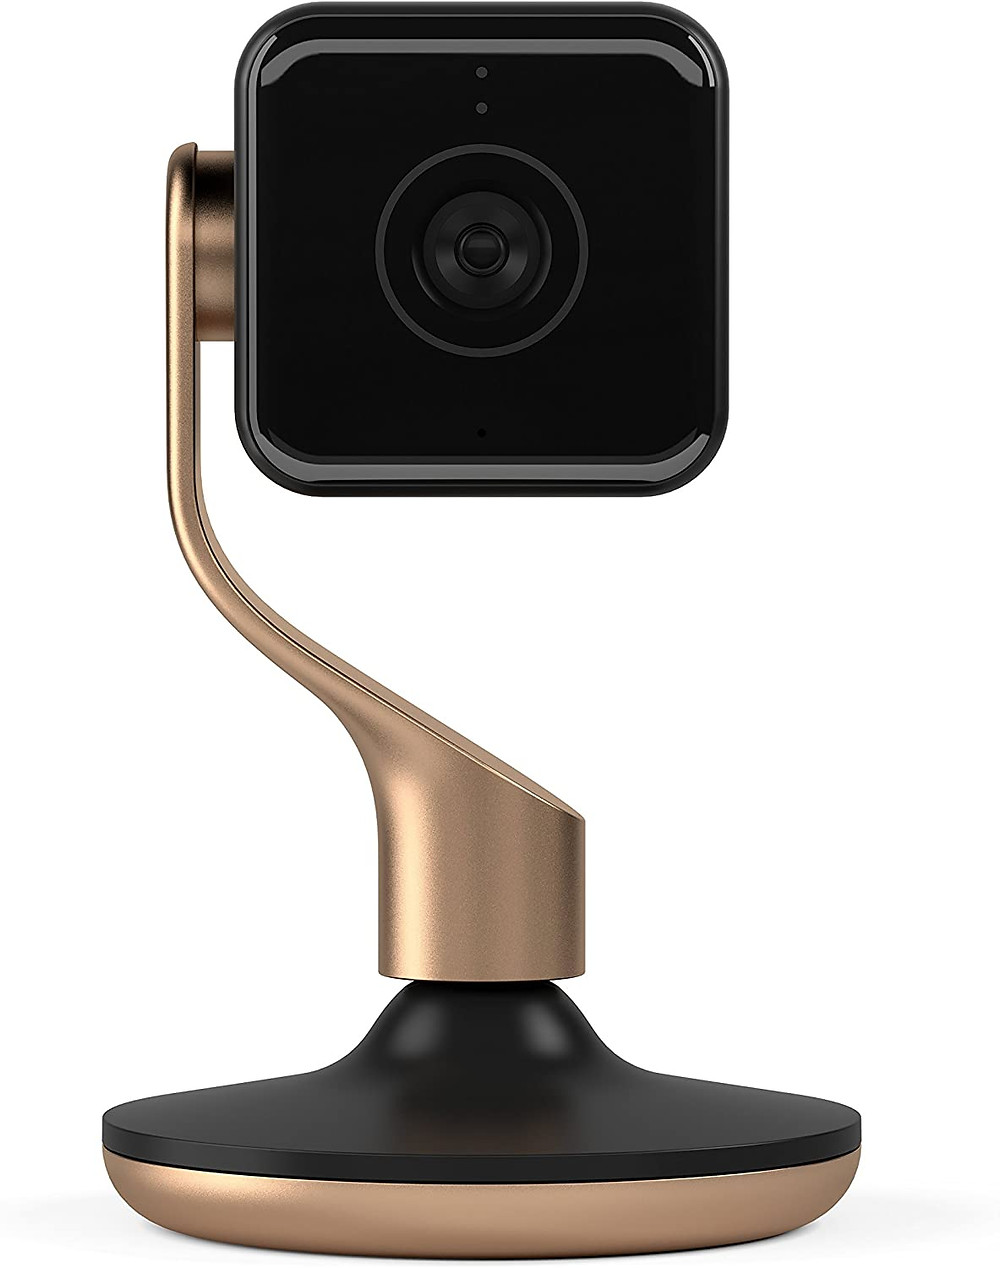 Hive View Home Security Camera